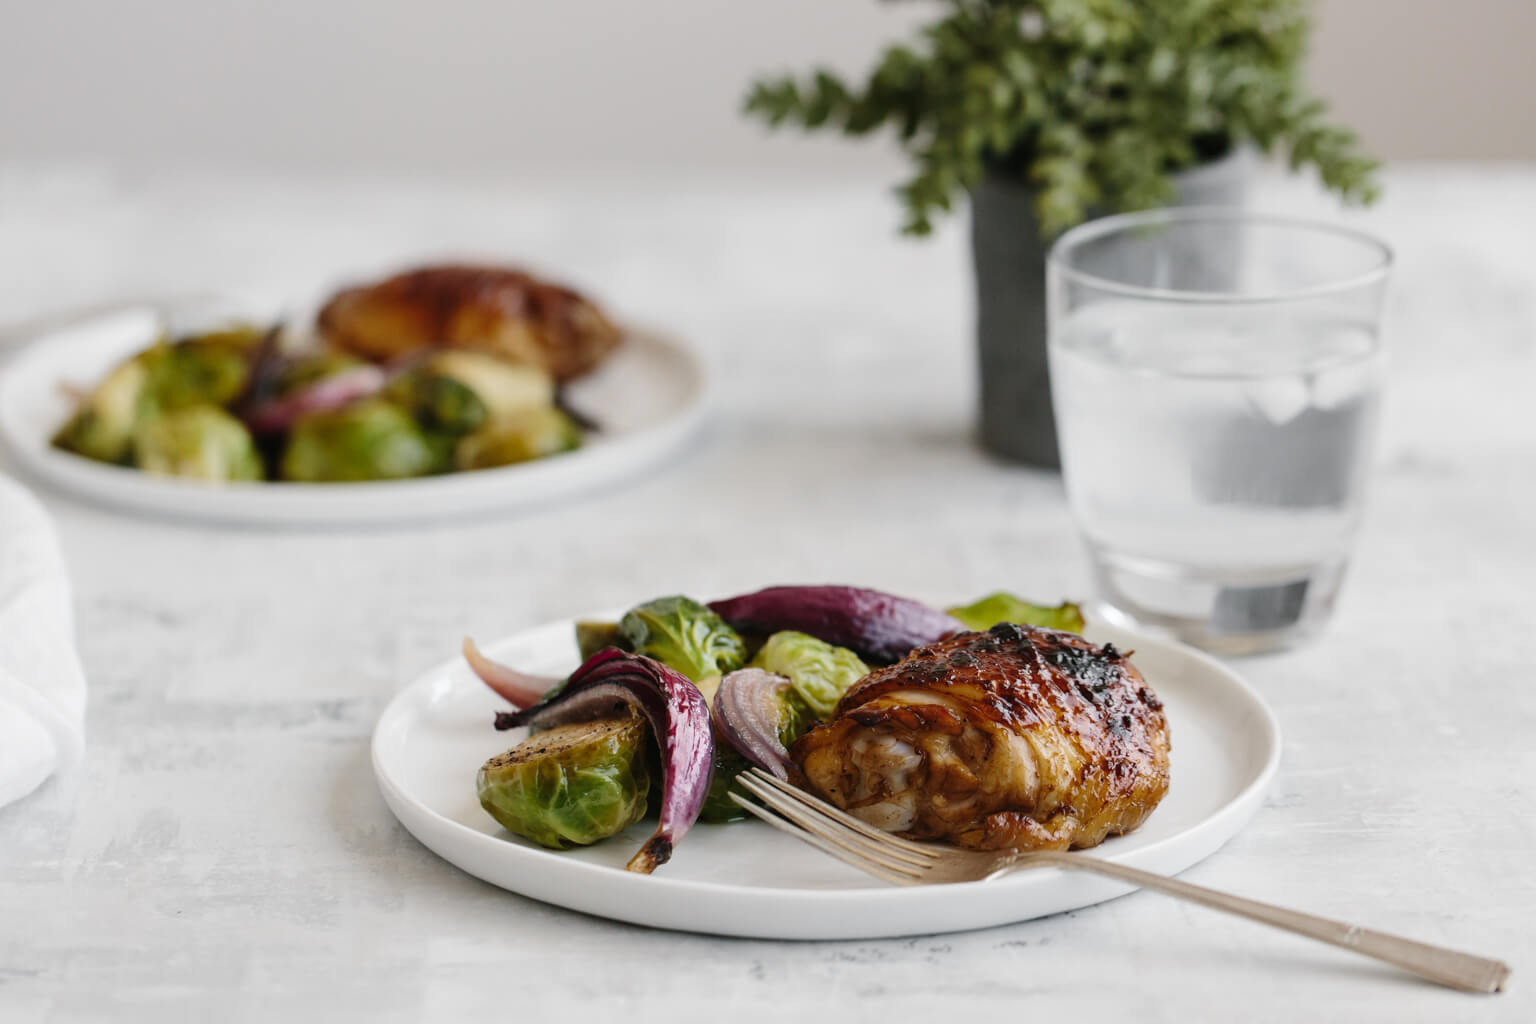 (gluten-free, paleo) Roasted balsamic chicken and brussels sprouts. An easy, healthy, one pan recipe that's sure to be a family favorite.